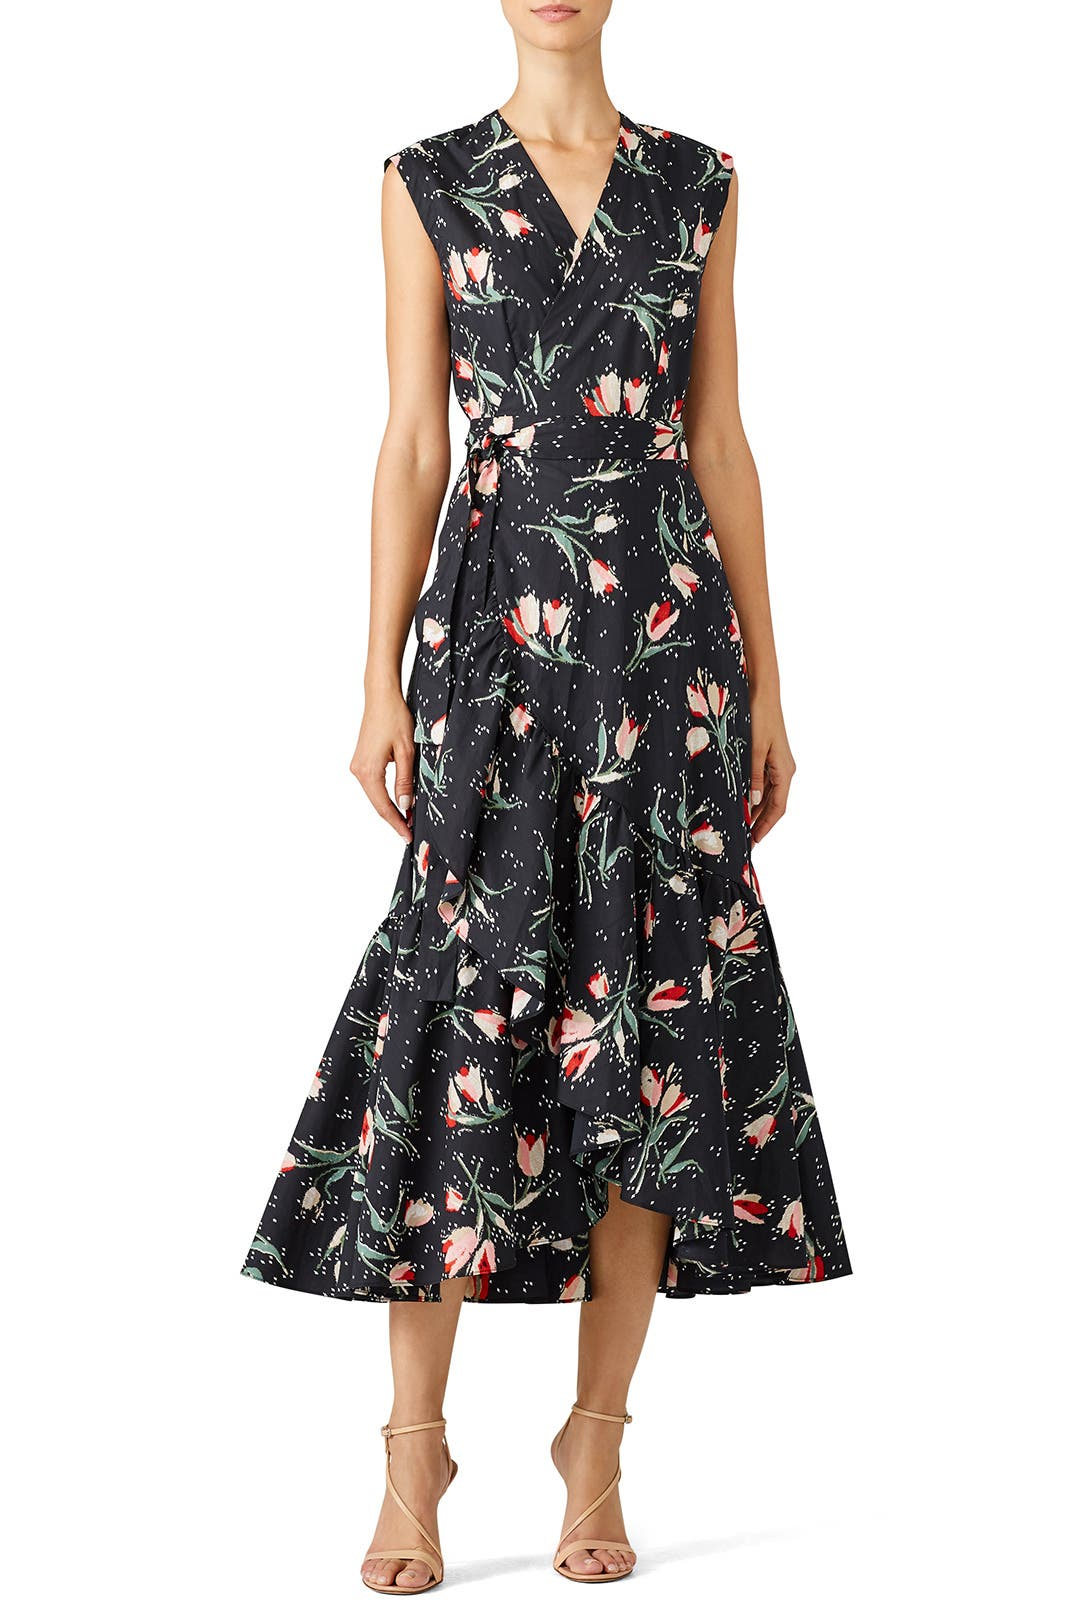 6530efc5 Ikat Wrap Dress by Rebecca Taylor for $85 - $95 | Rent the Runway